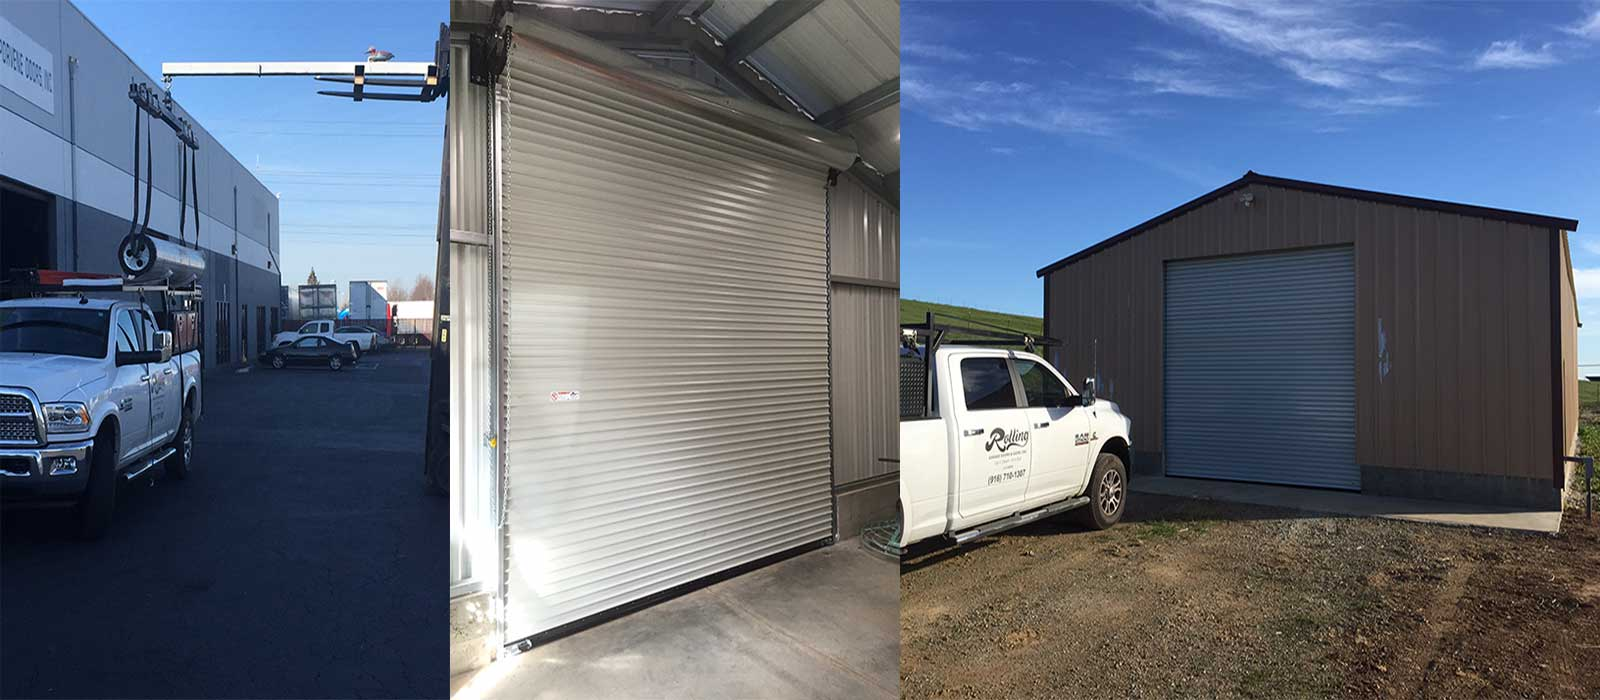 Commercial Garage Door Pickup, Before and After Photos of a Steel Workshop Rollup Garage Door by Rolling Garage Doors & Gates